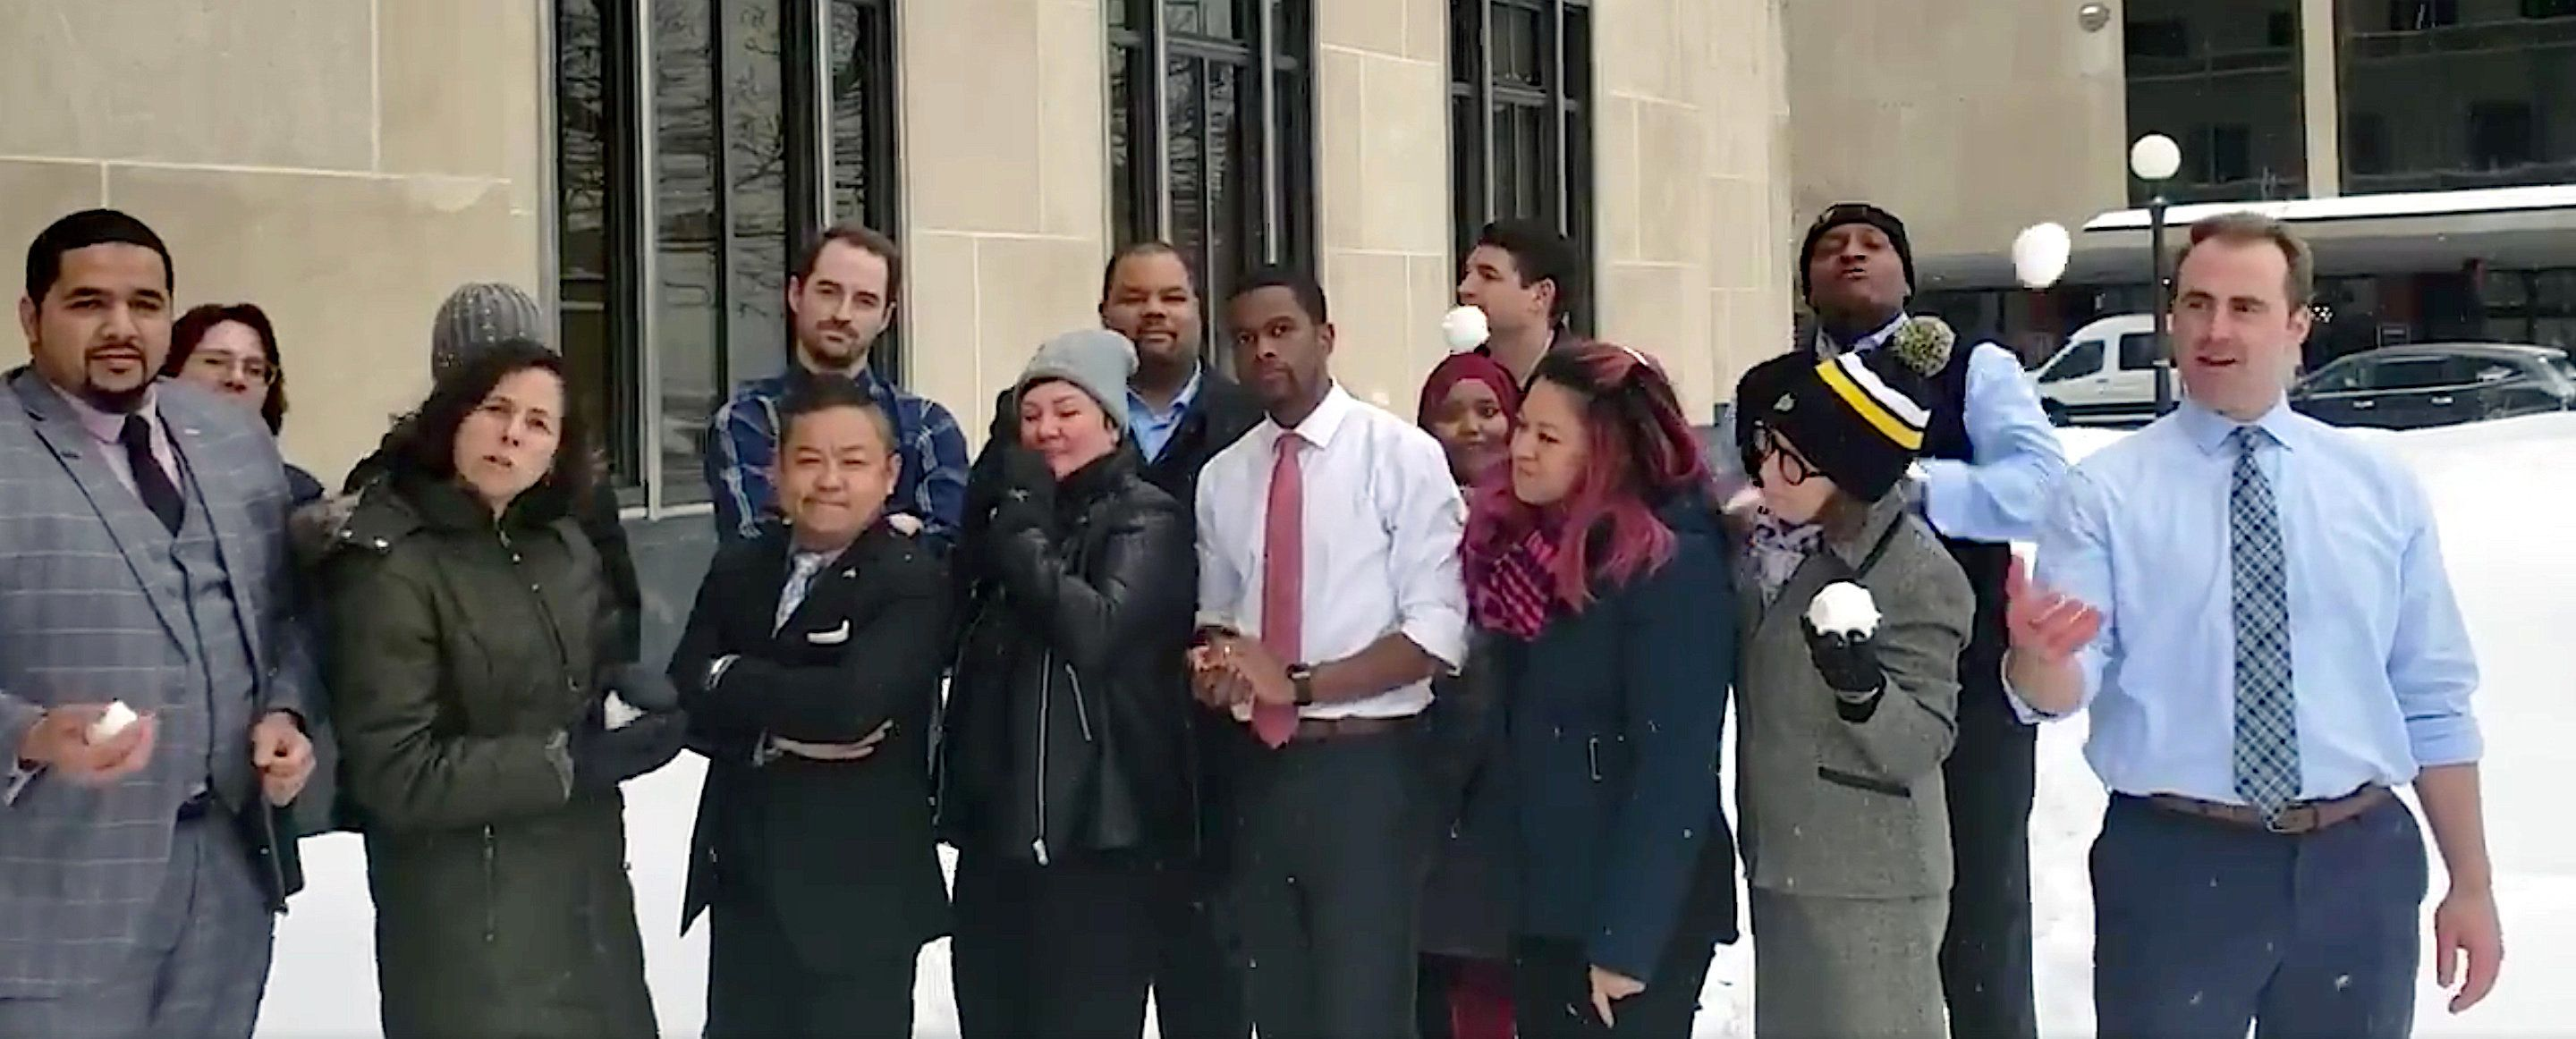 St. Paul Mayor Melvin Carter and the City Council challenge Minneapolis to a snowball fight.